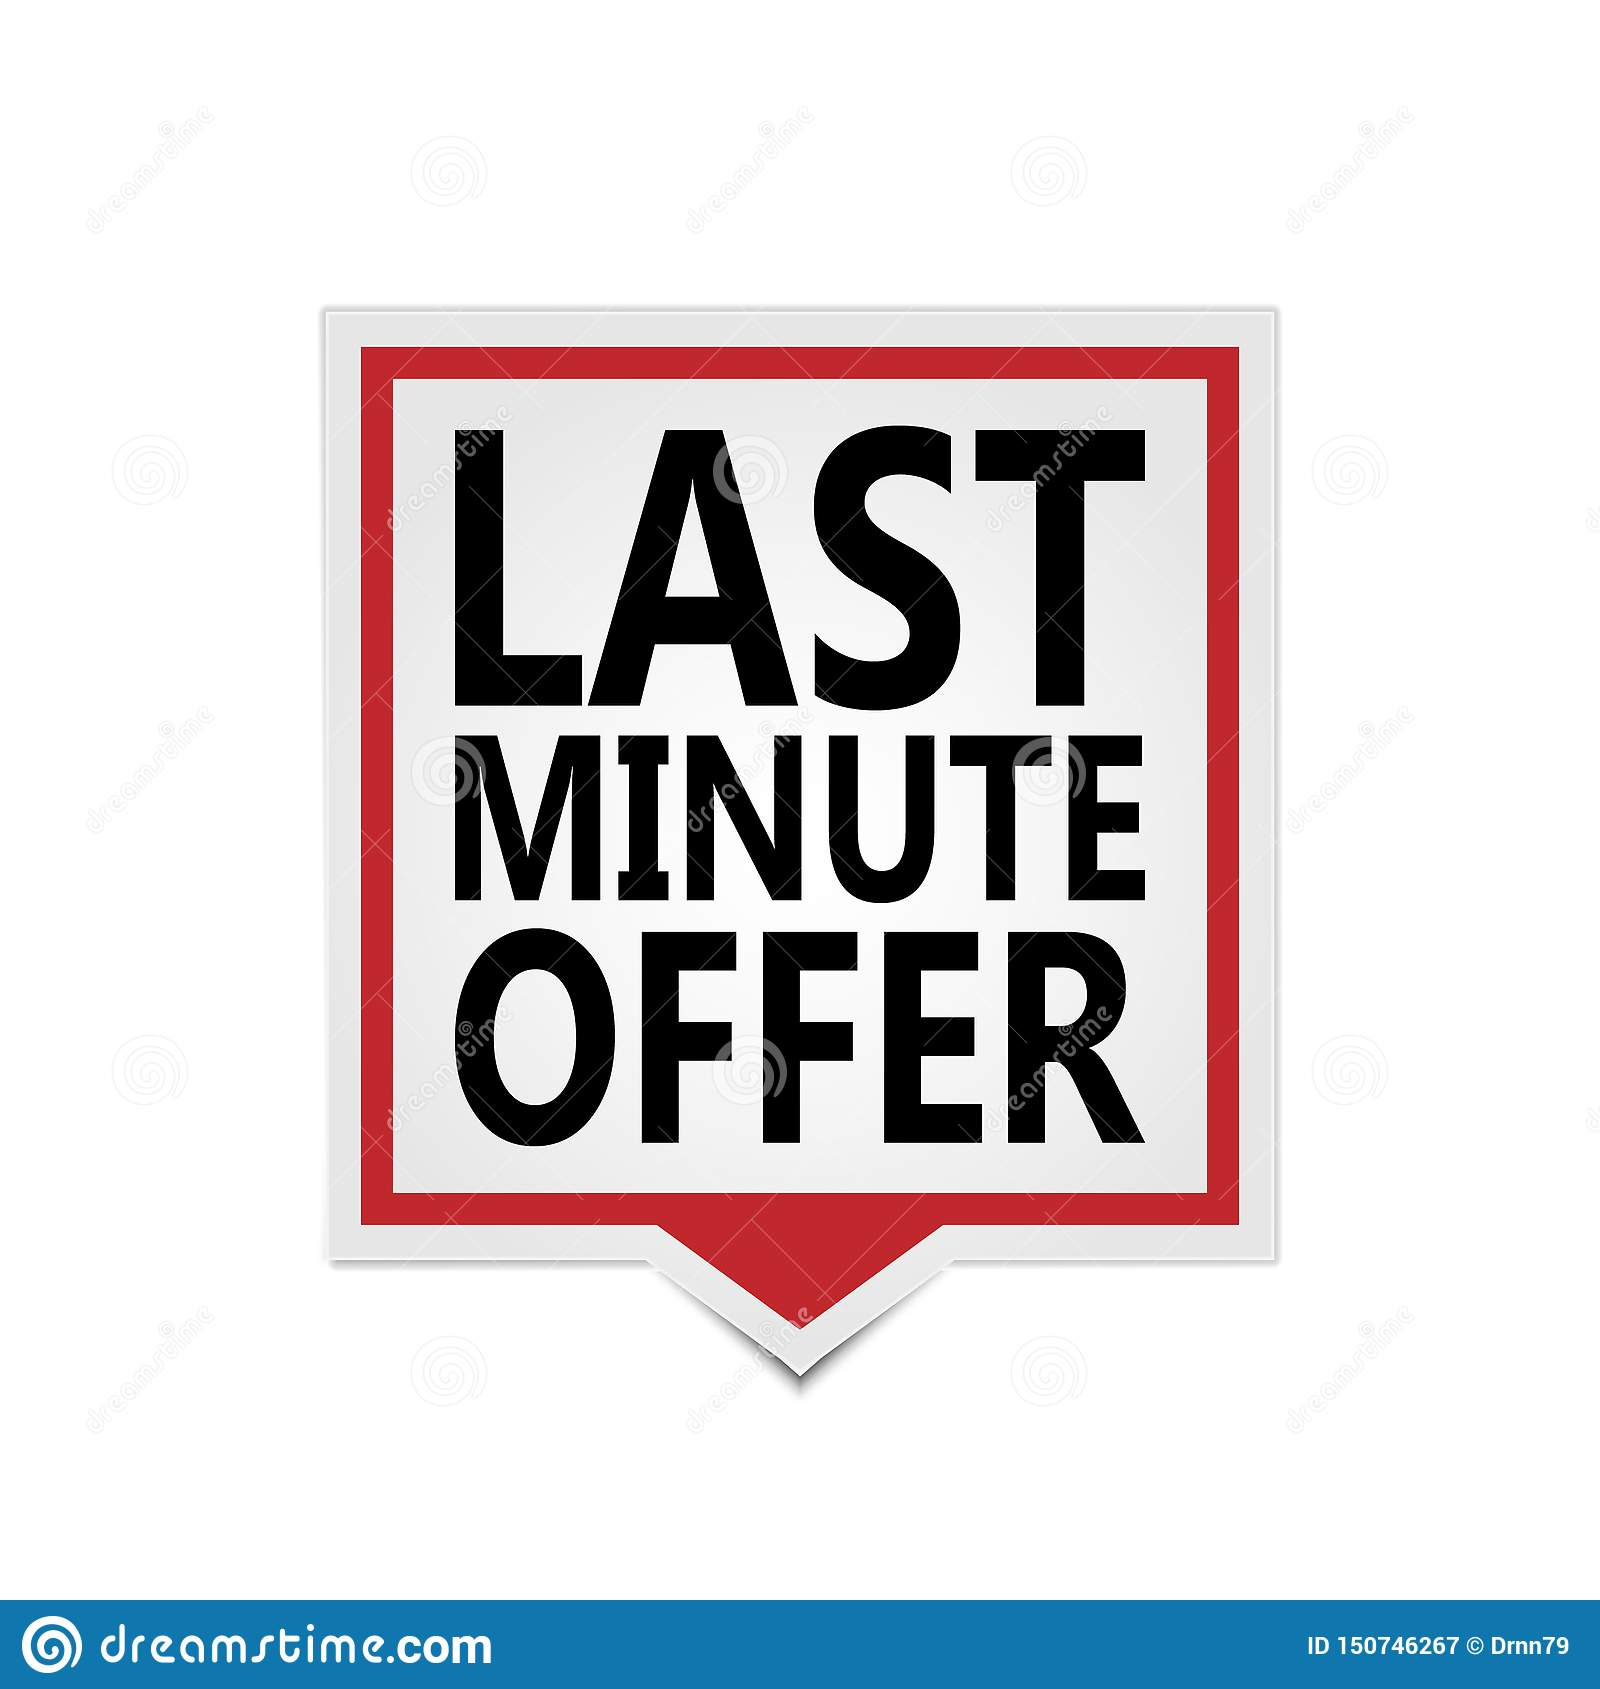 Last Minute Offer Square speech bubble Label web sticker isolated